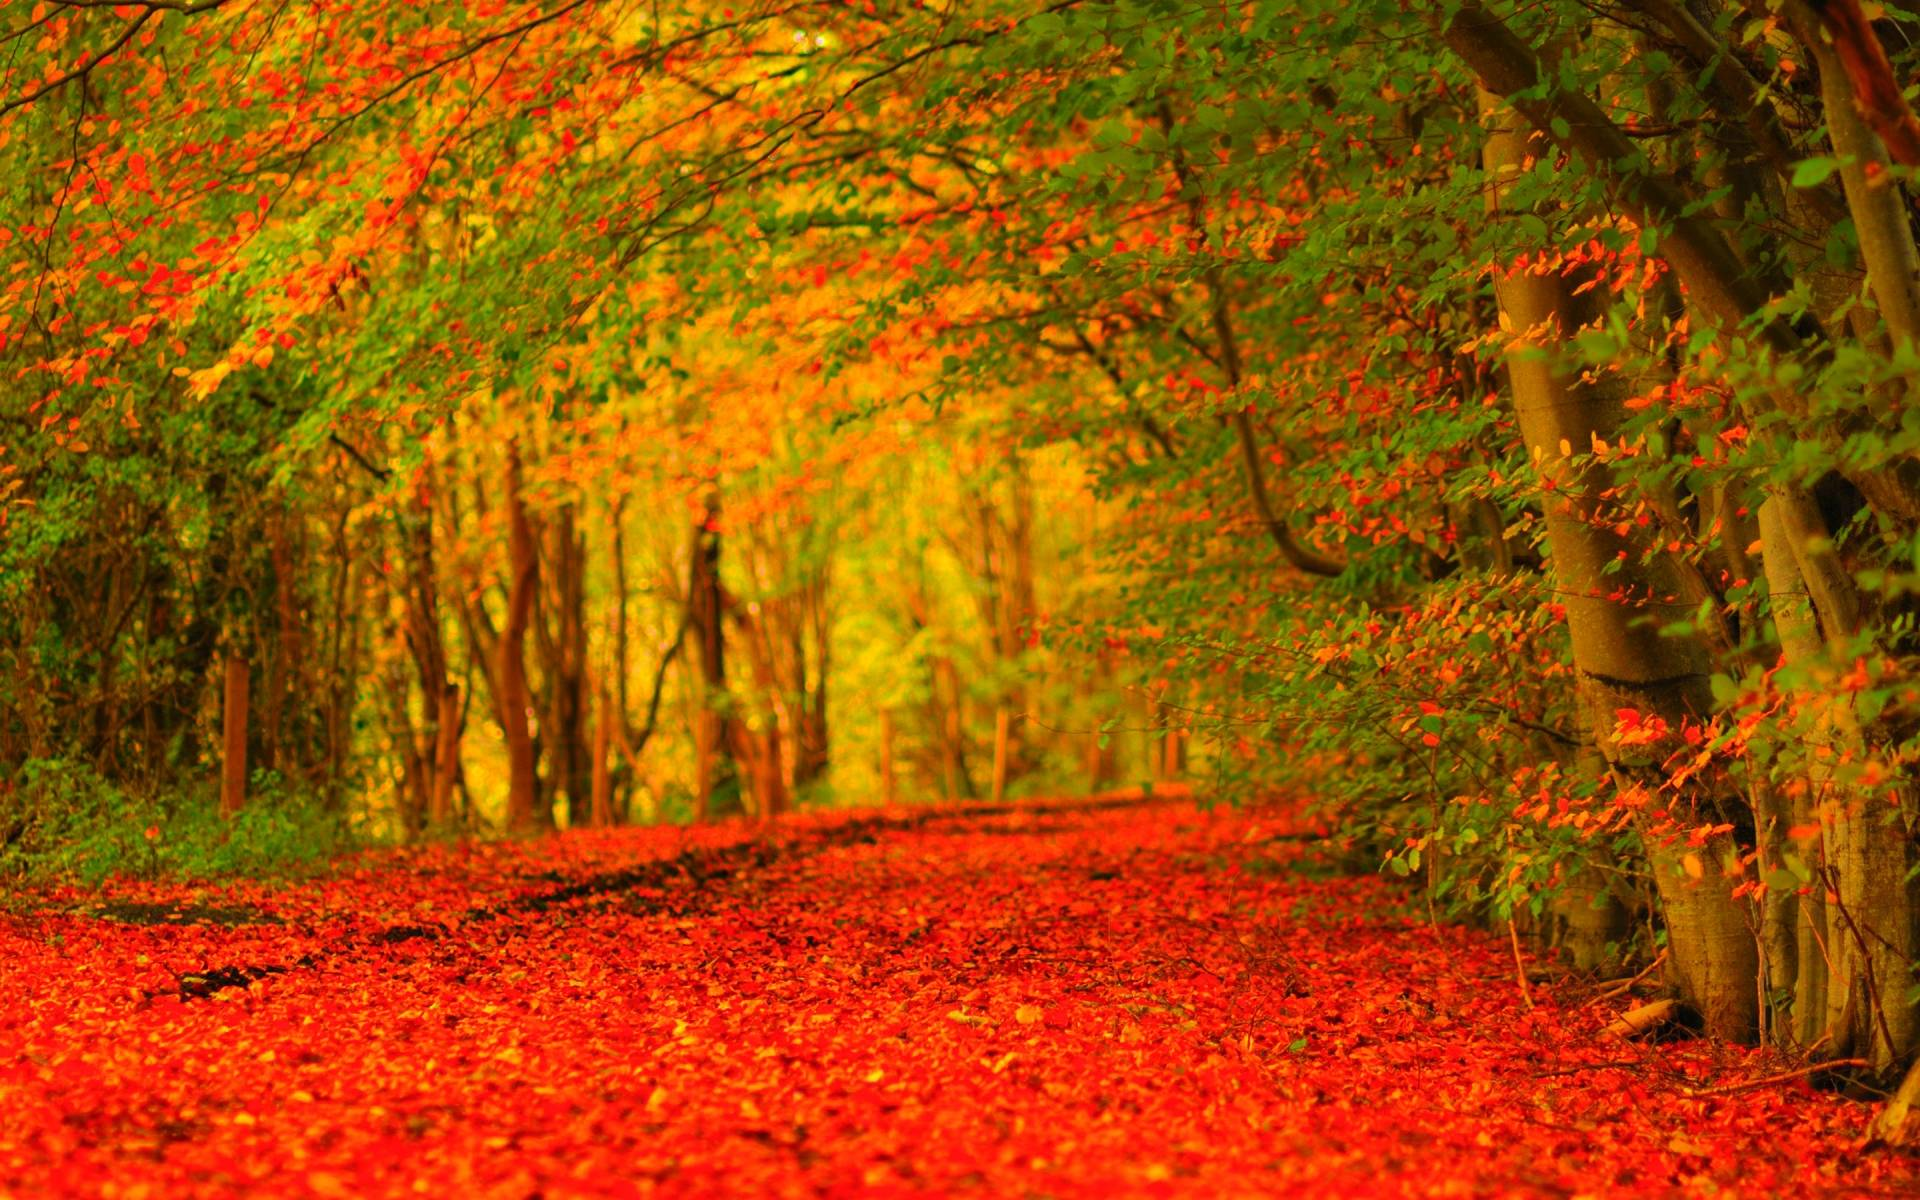 Free Desktop Wallpaper Fall Foliage Fall Themed Desktop Backgrounds 36 Wallpapers Adorable